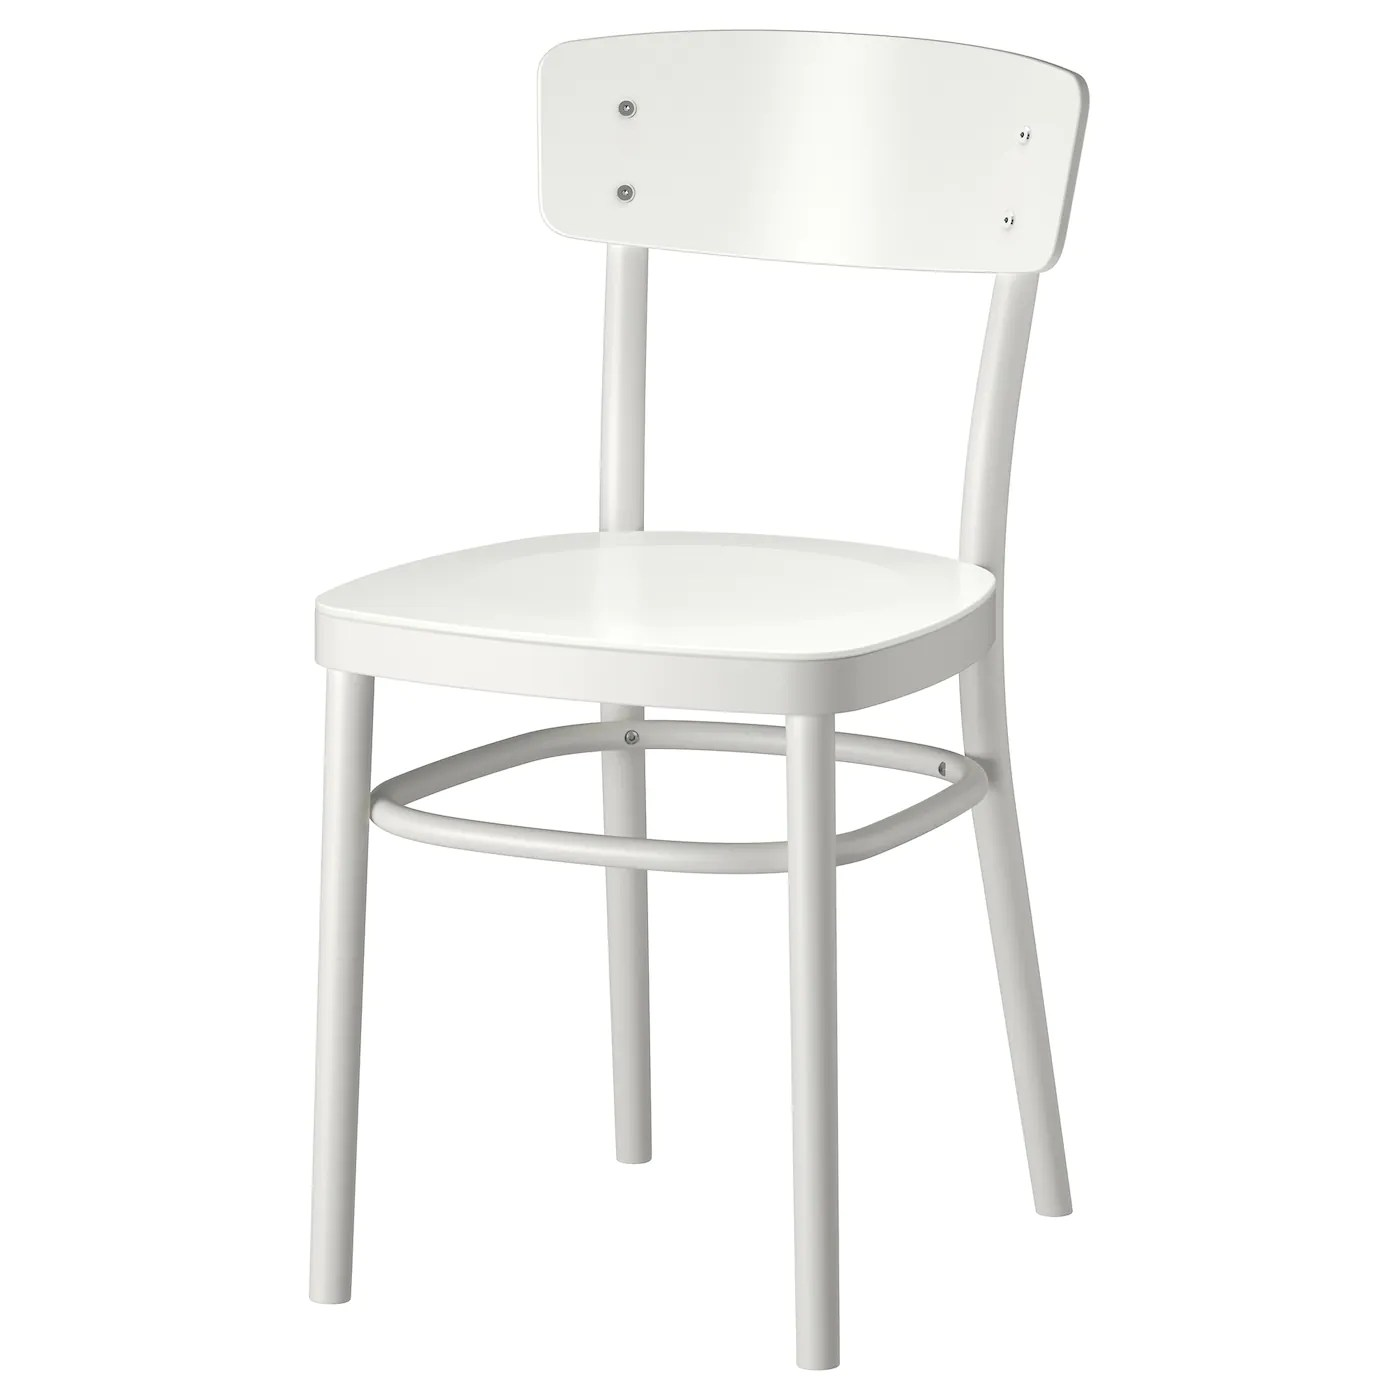 Sedie Policarbonato Economiche Dining Chairs And Kitchen Chairs Ikea